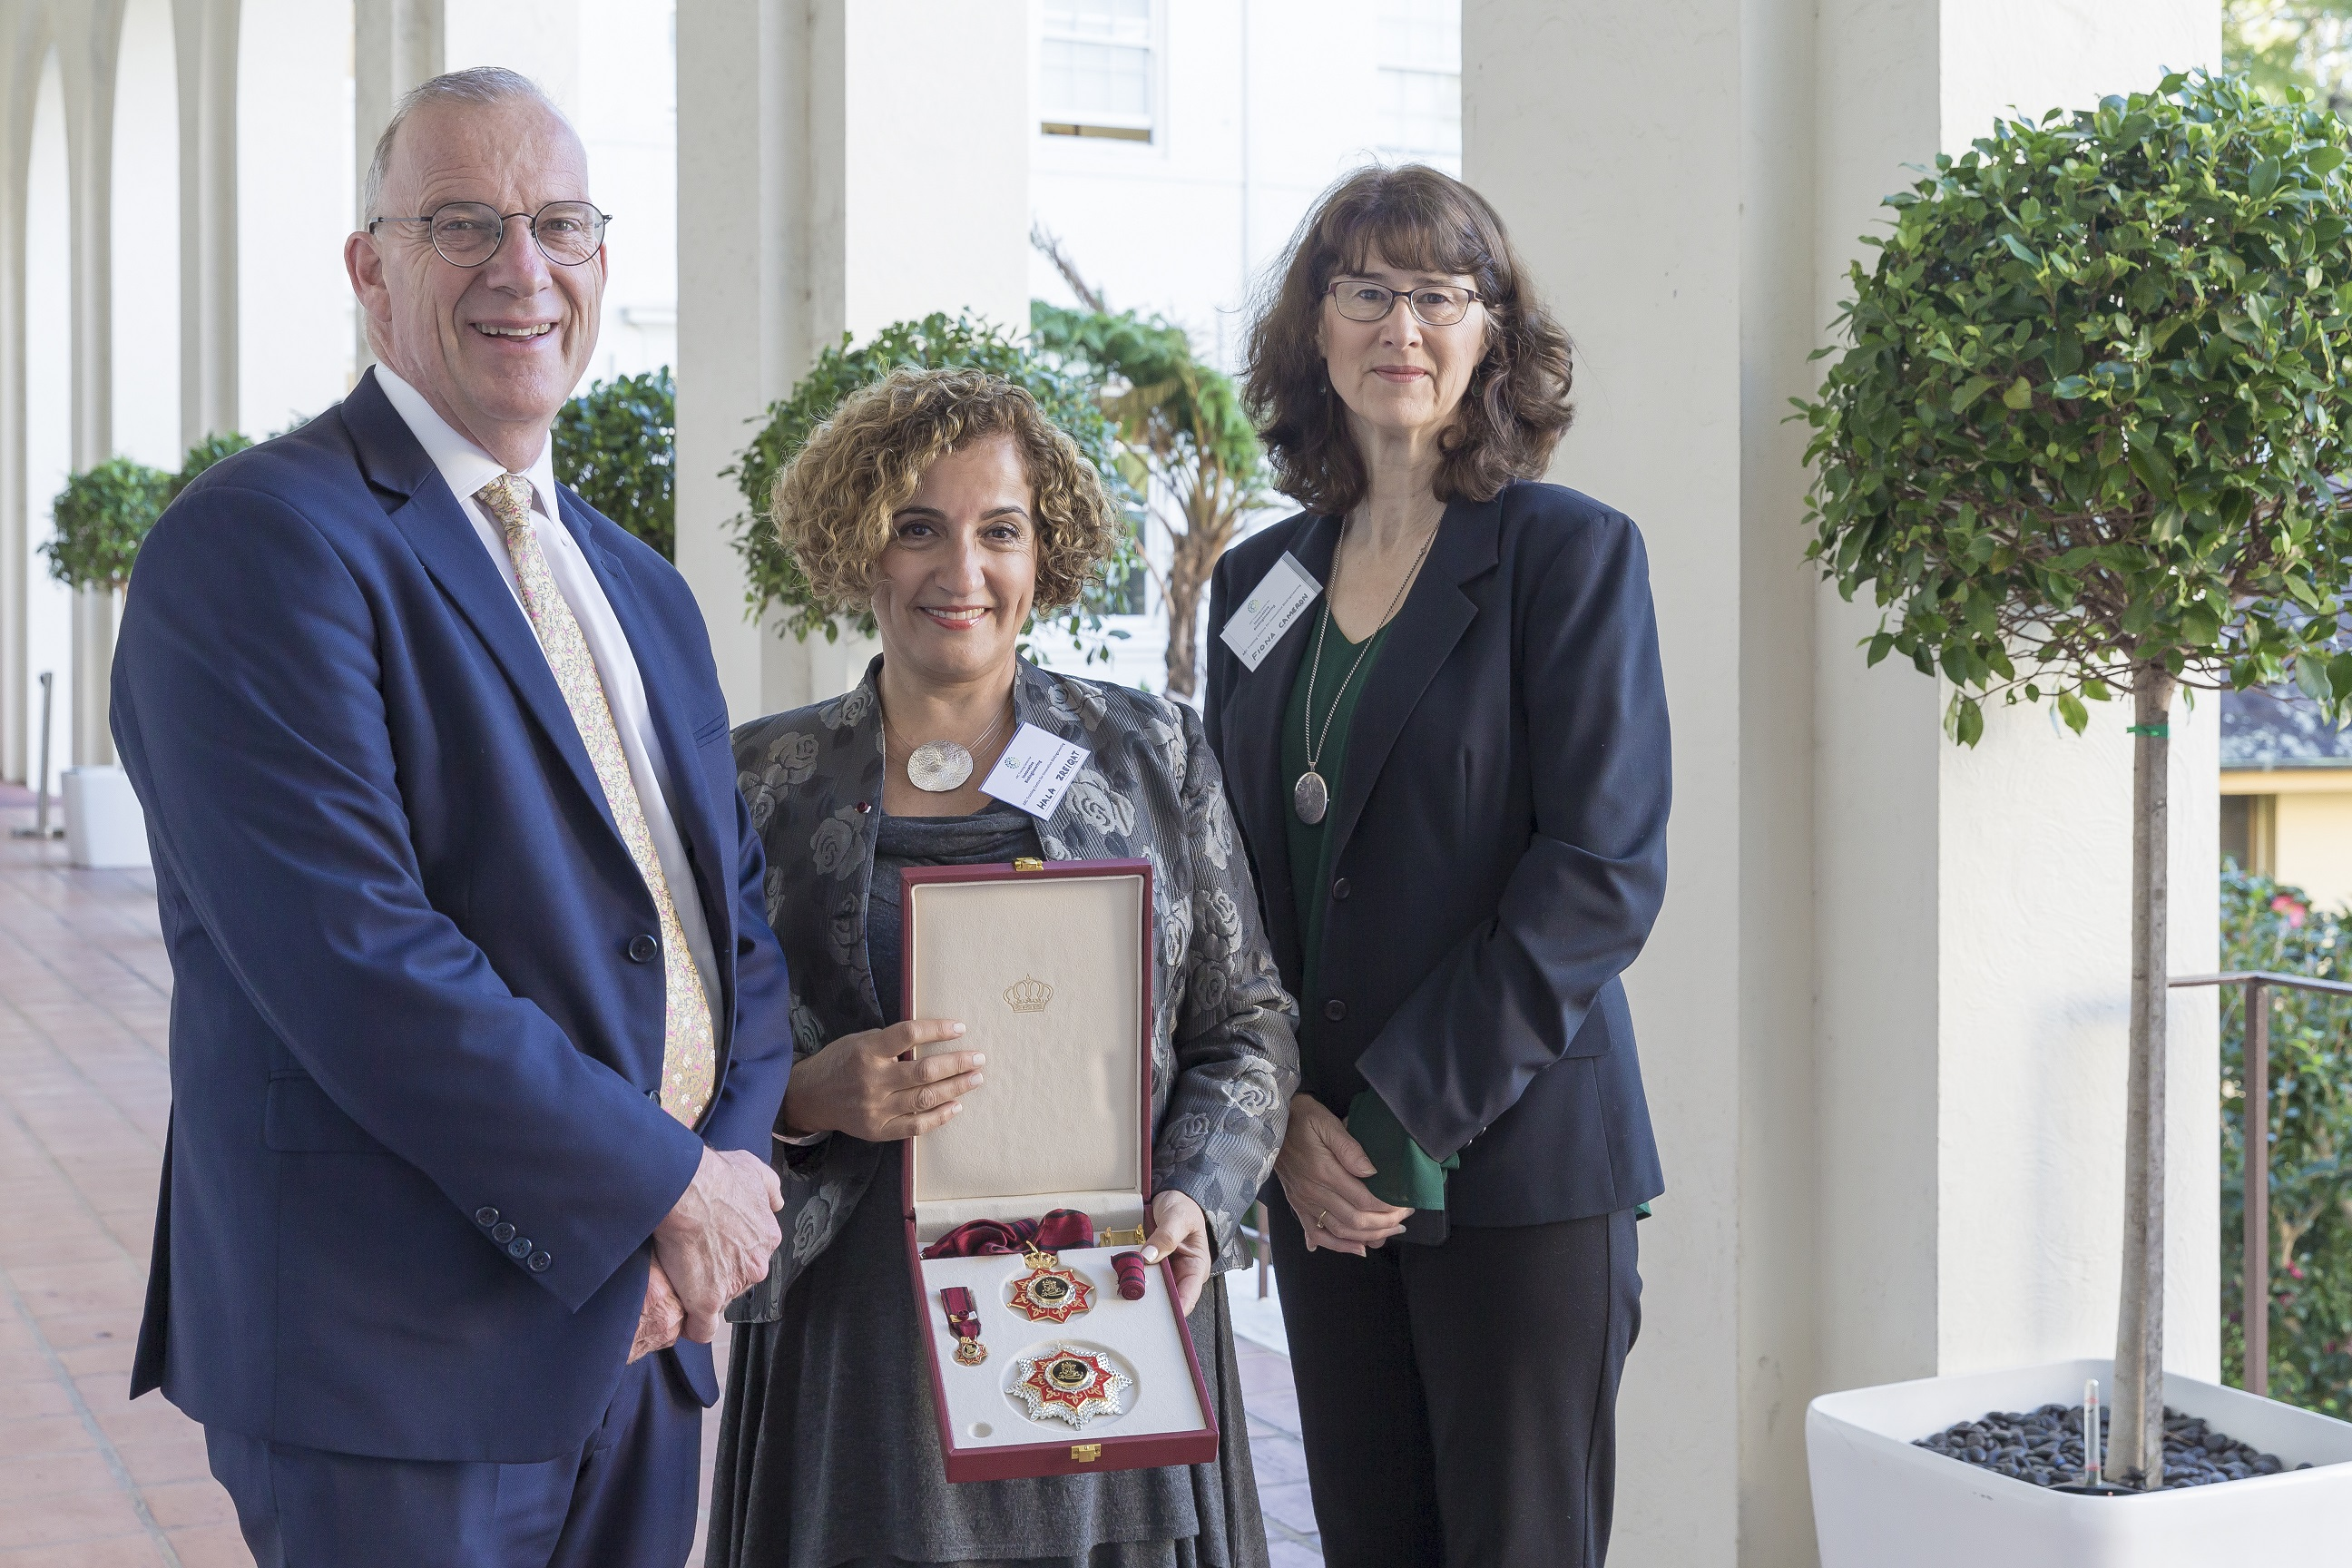 (l-r) Vice-Chancellor and Principal Dr Michael Spence, Professor Hala Zreiqat and Dr Fiona Cameron, Executive Director for Biological Sciences and Biotechnology – Australian Research Council, at the launch of the Centre.